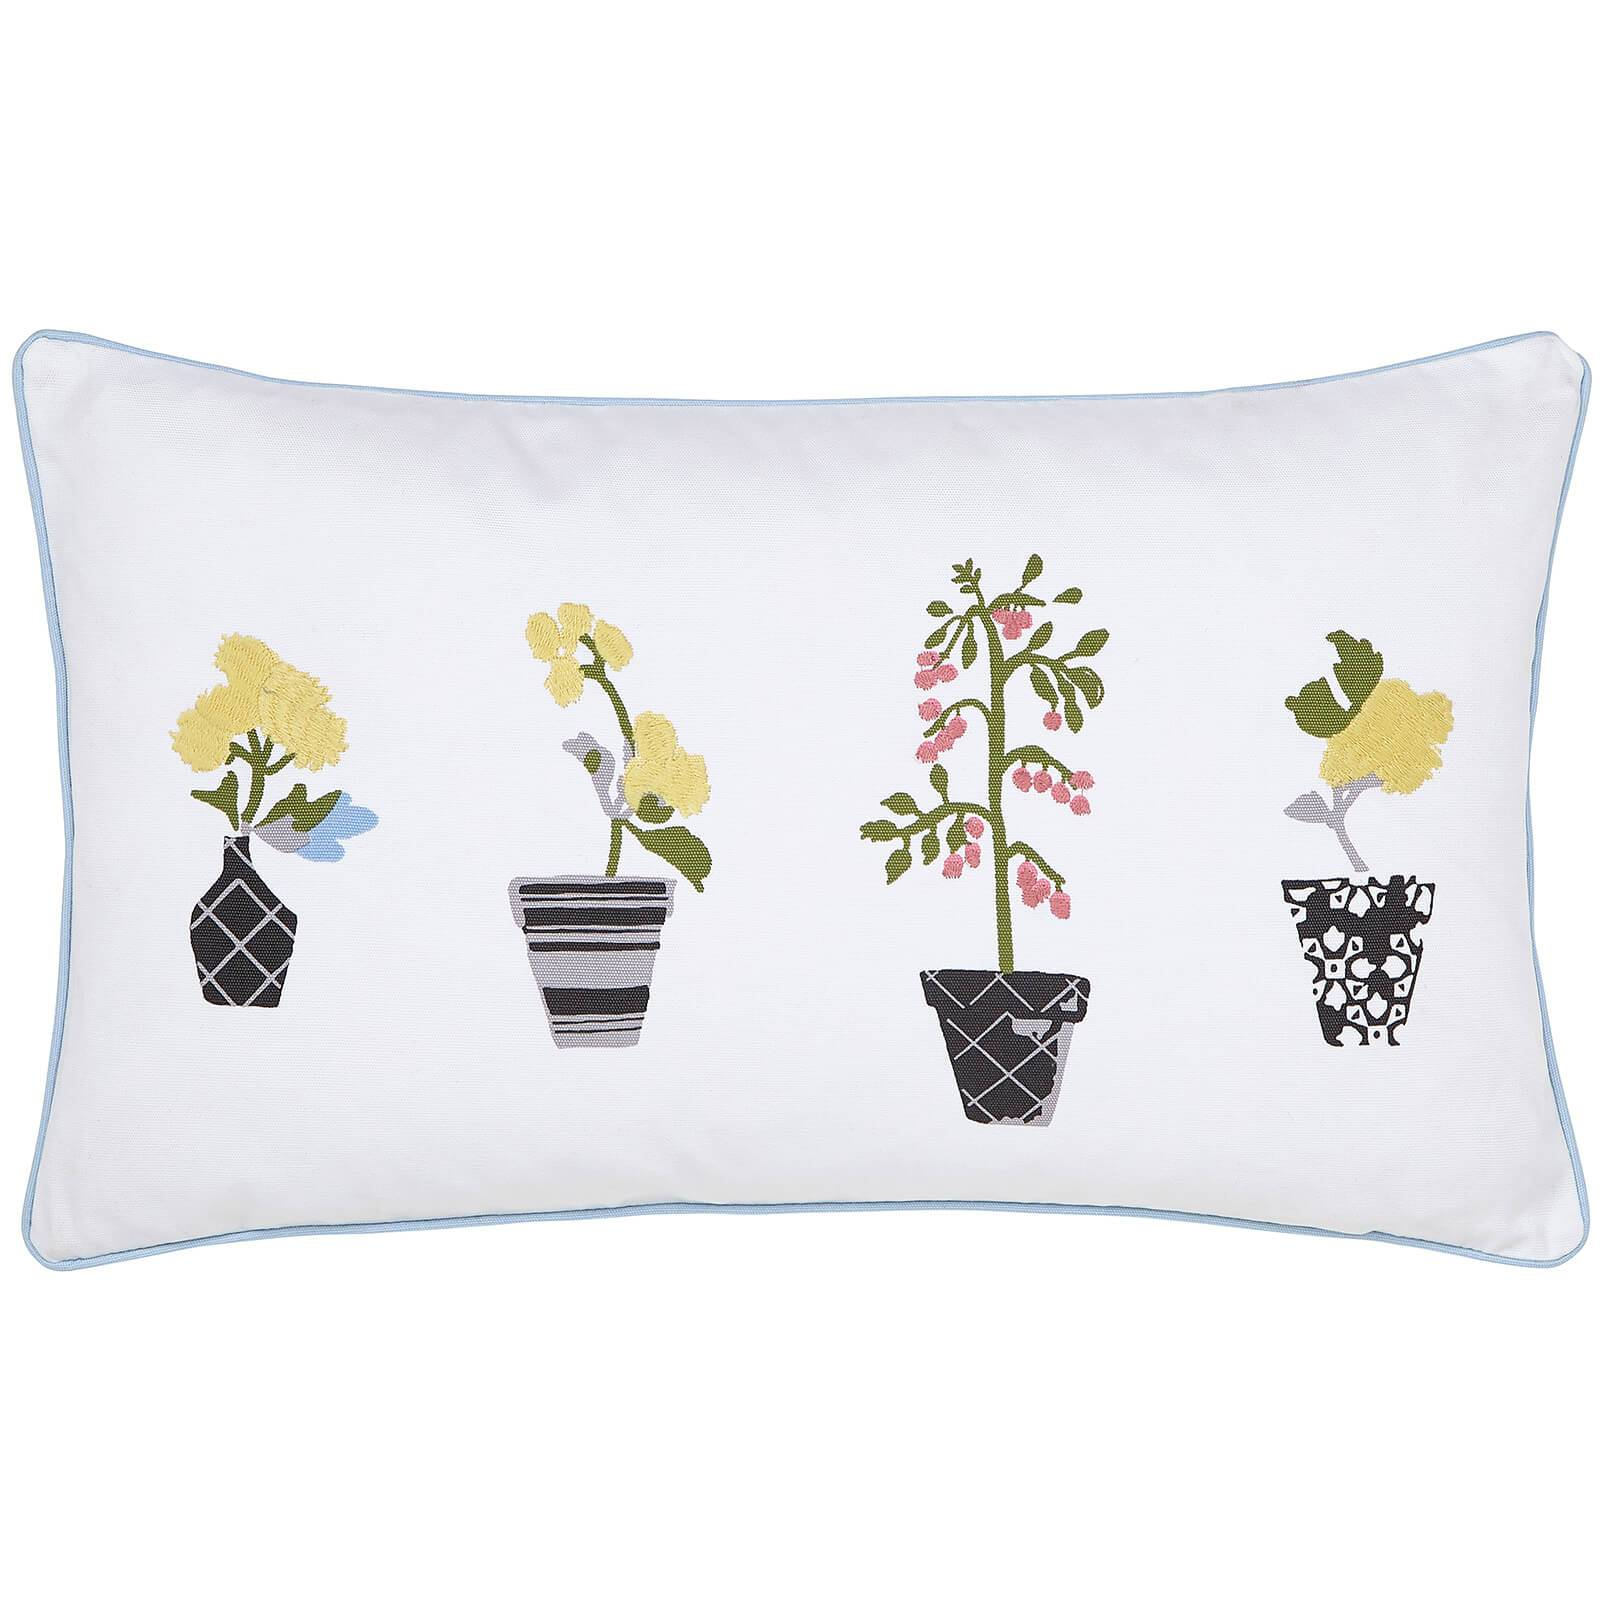 Joules Garden Dogs Cushions - White